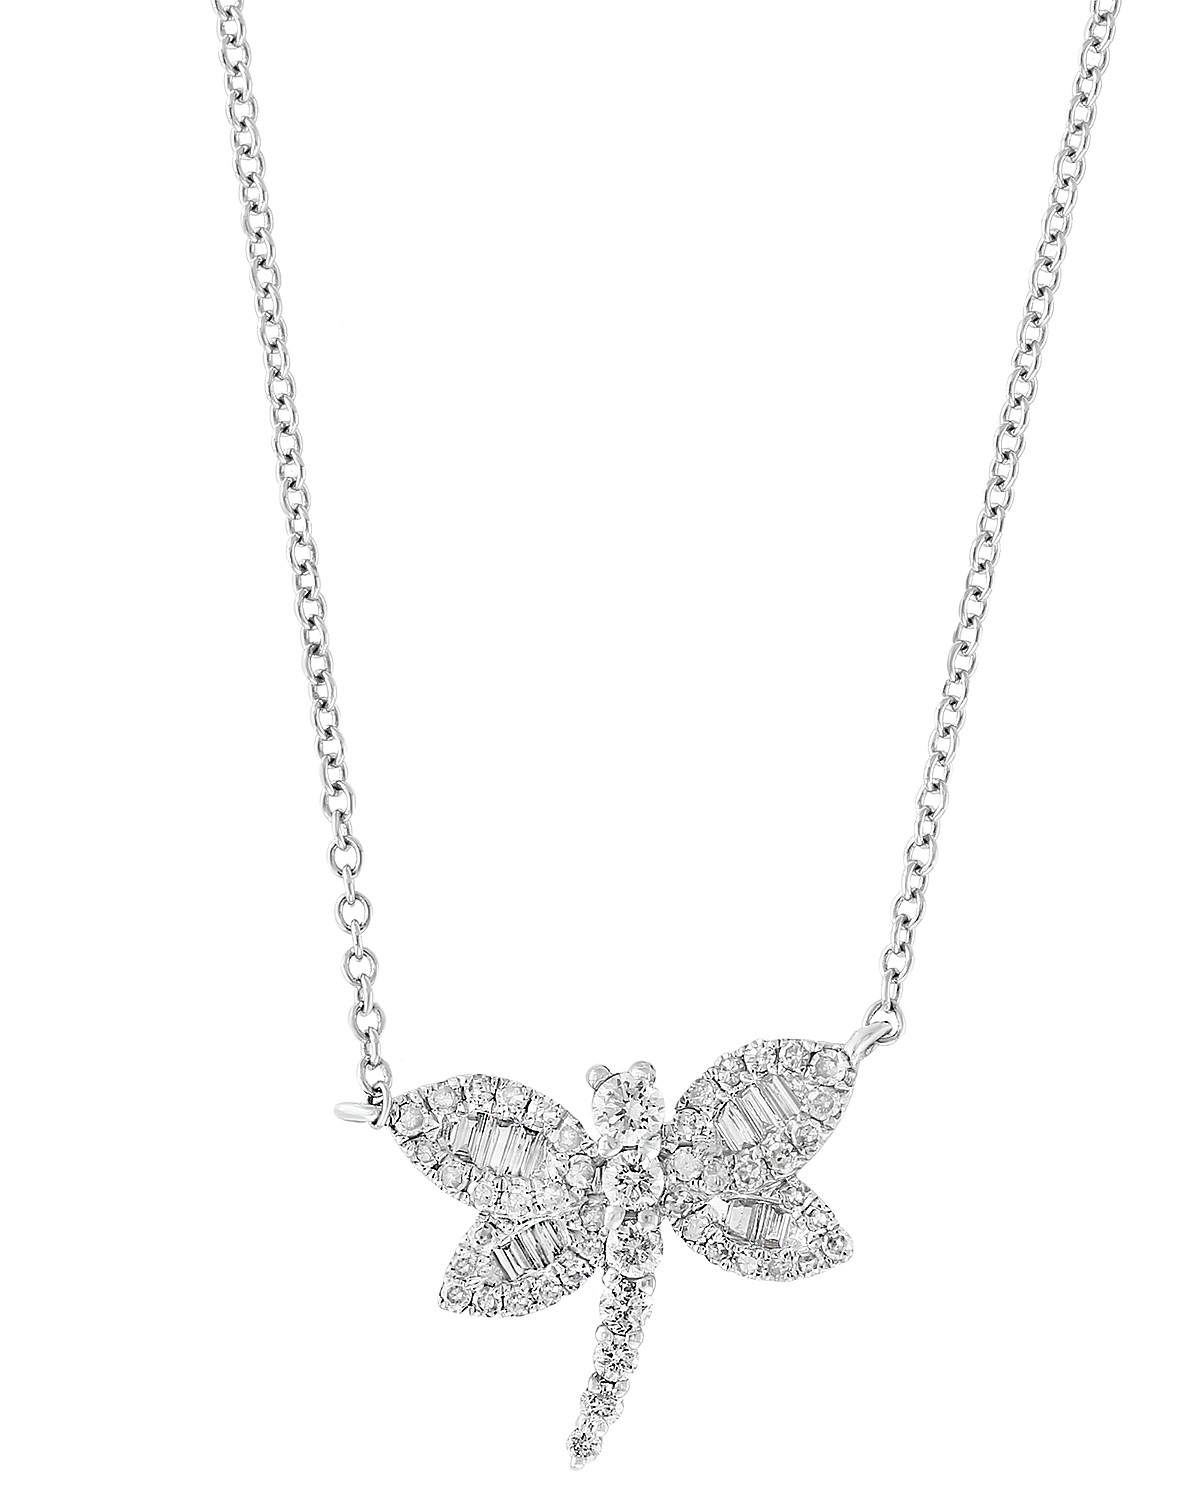 Bloomingdales diamond dragonfly pendant necklace in 14k white gold pdpimgshortdescription aloadofball Gallery